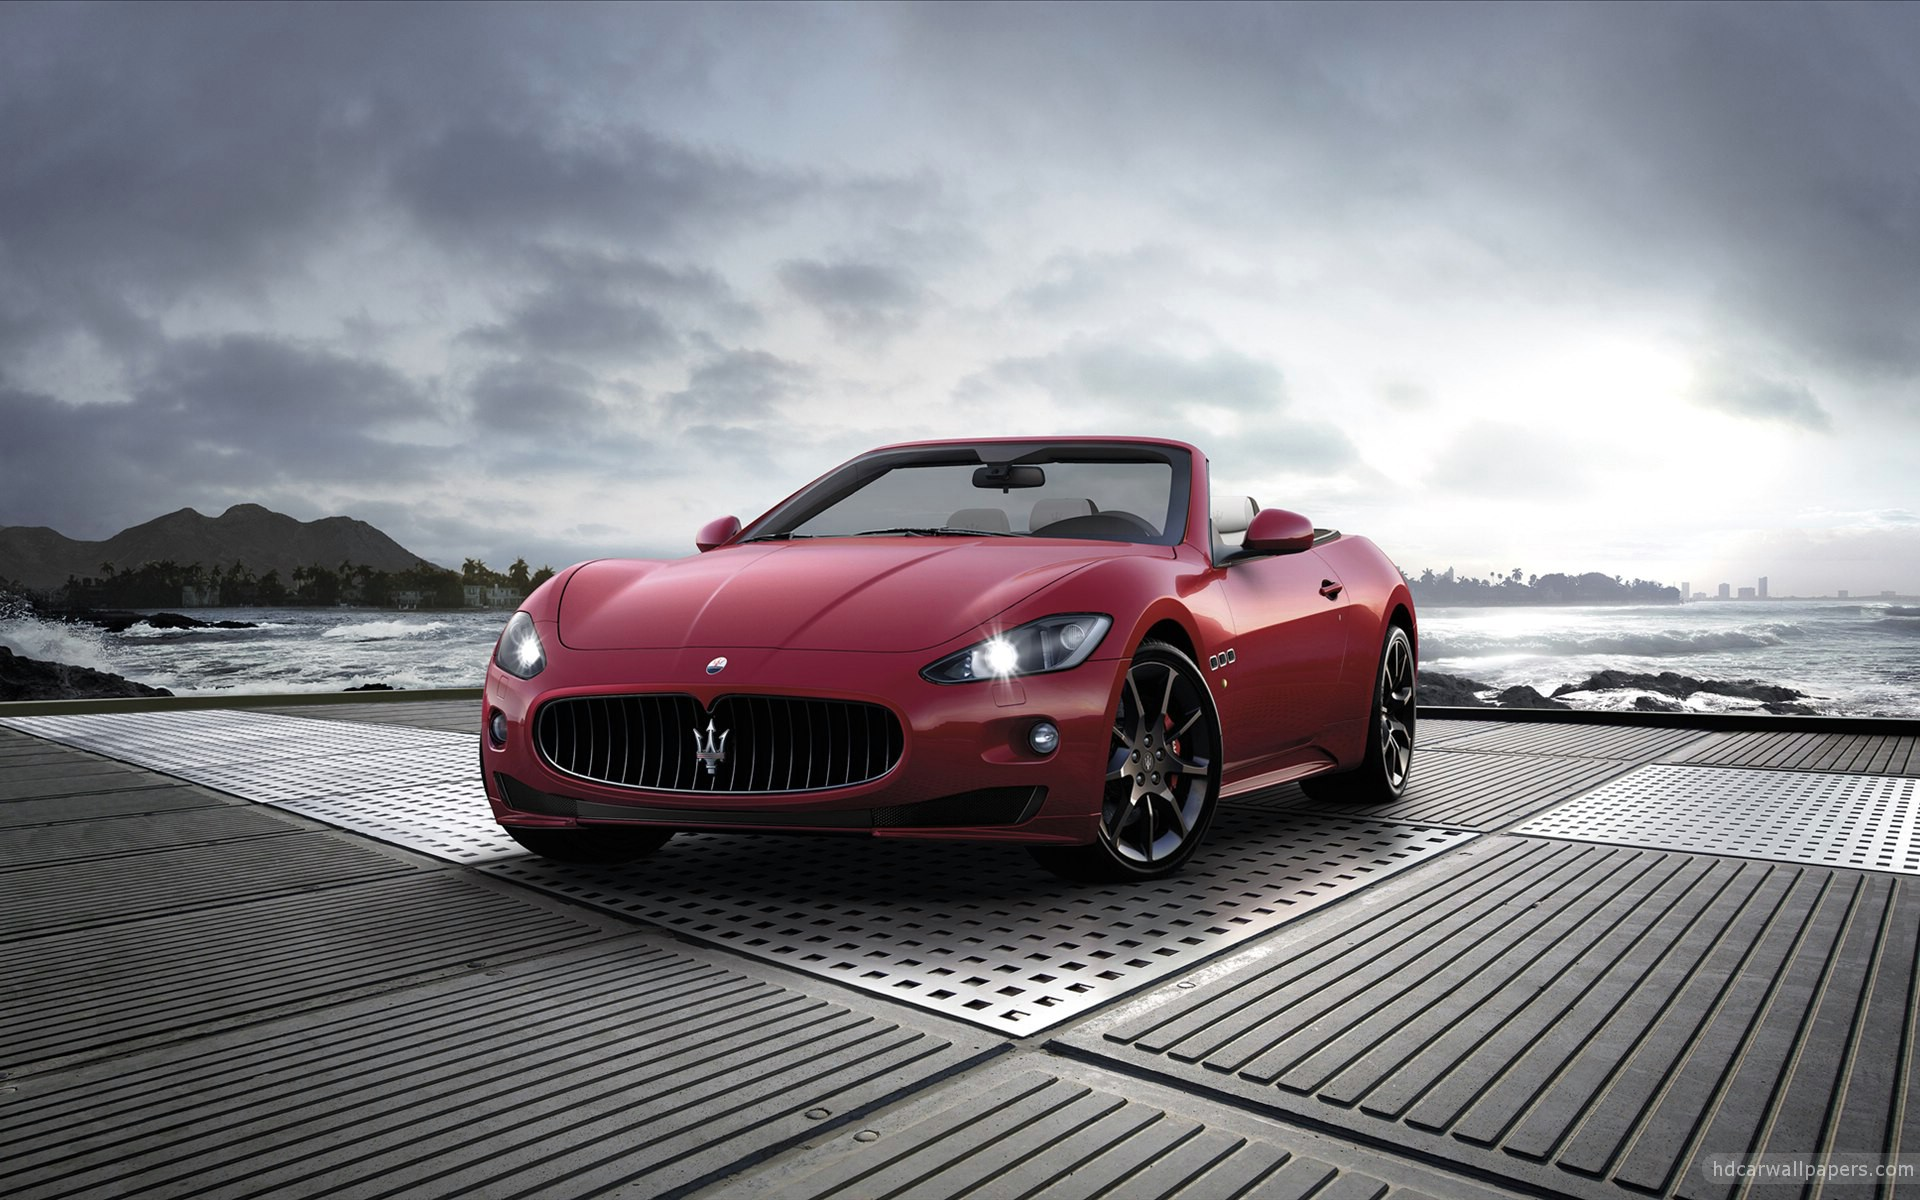 2012 maserati grancarbio sport wallpaper hd car wallpapers id 2007. Black Bedroom Furniture Sets. Home Design Ideas